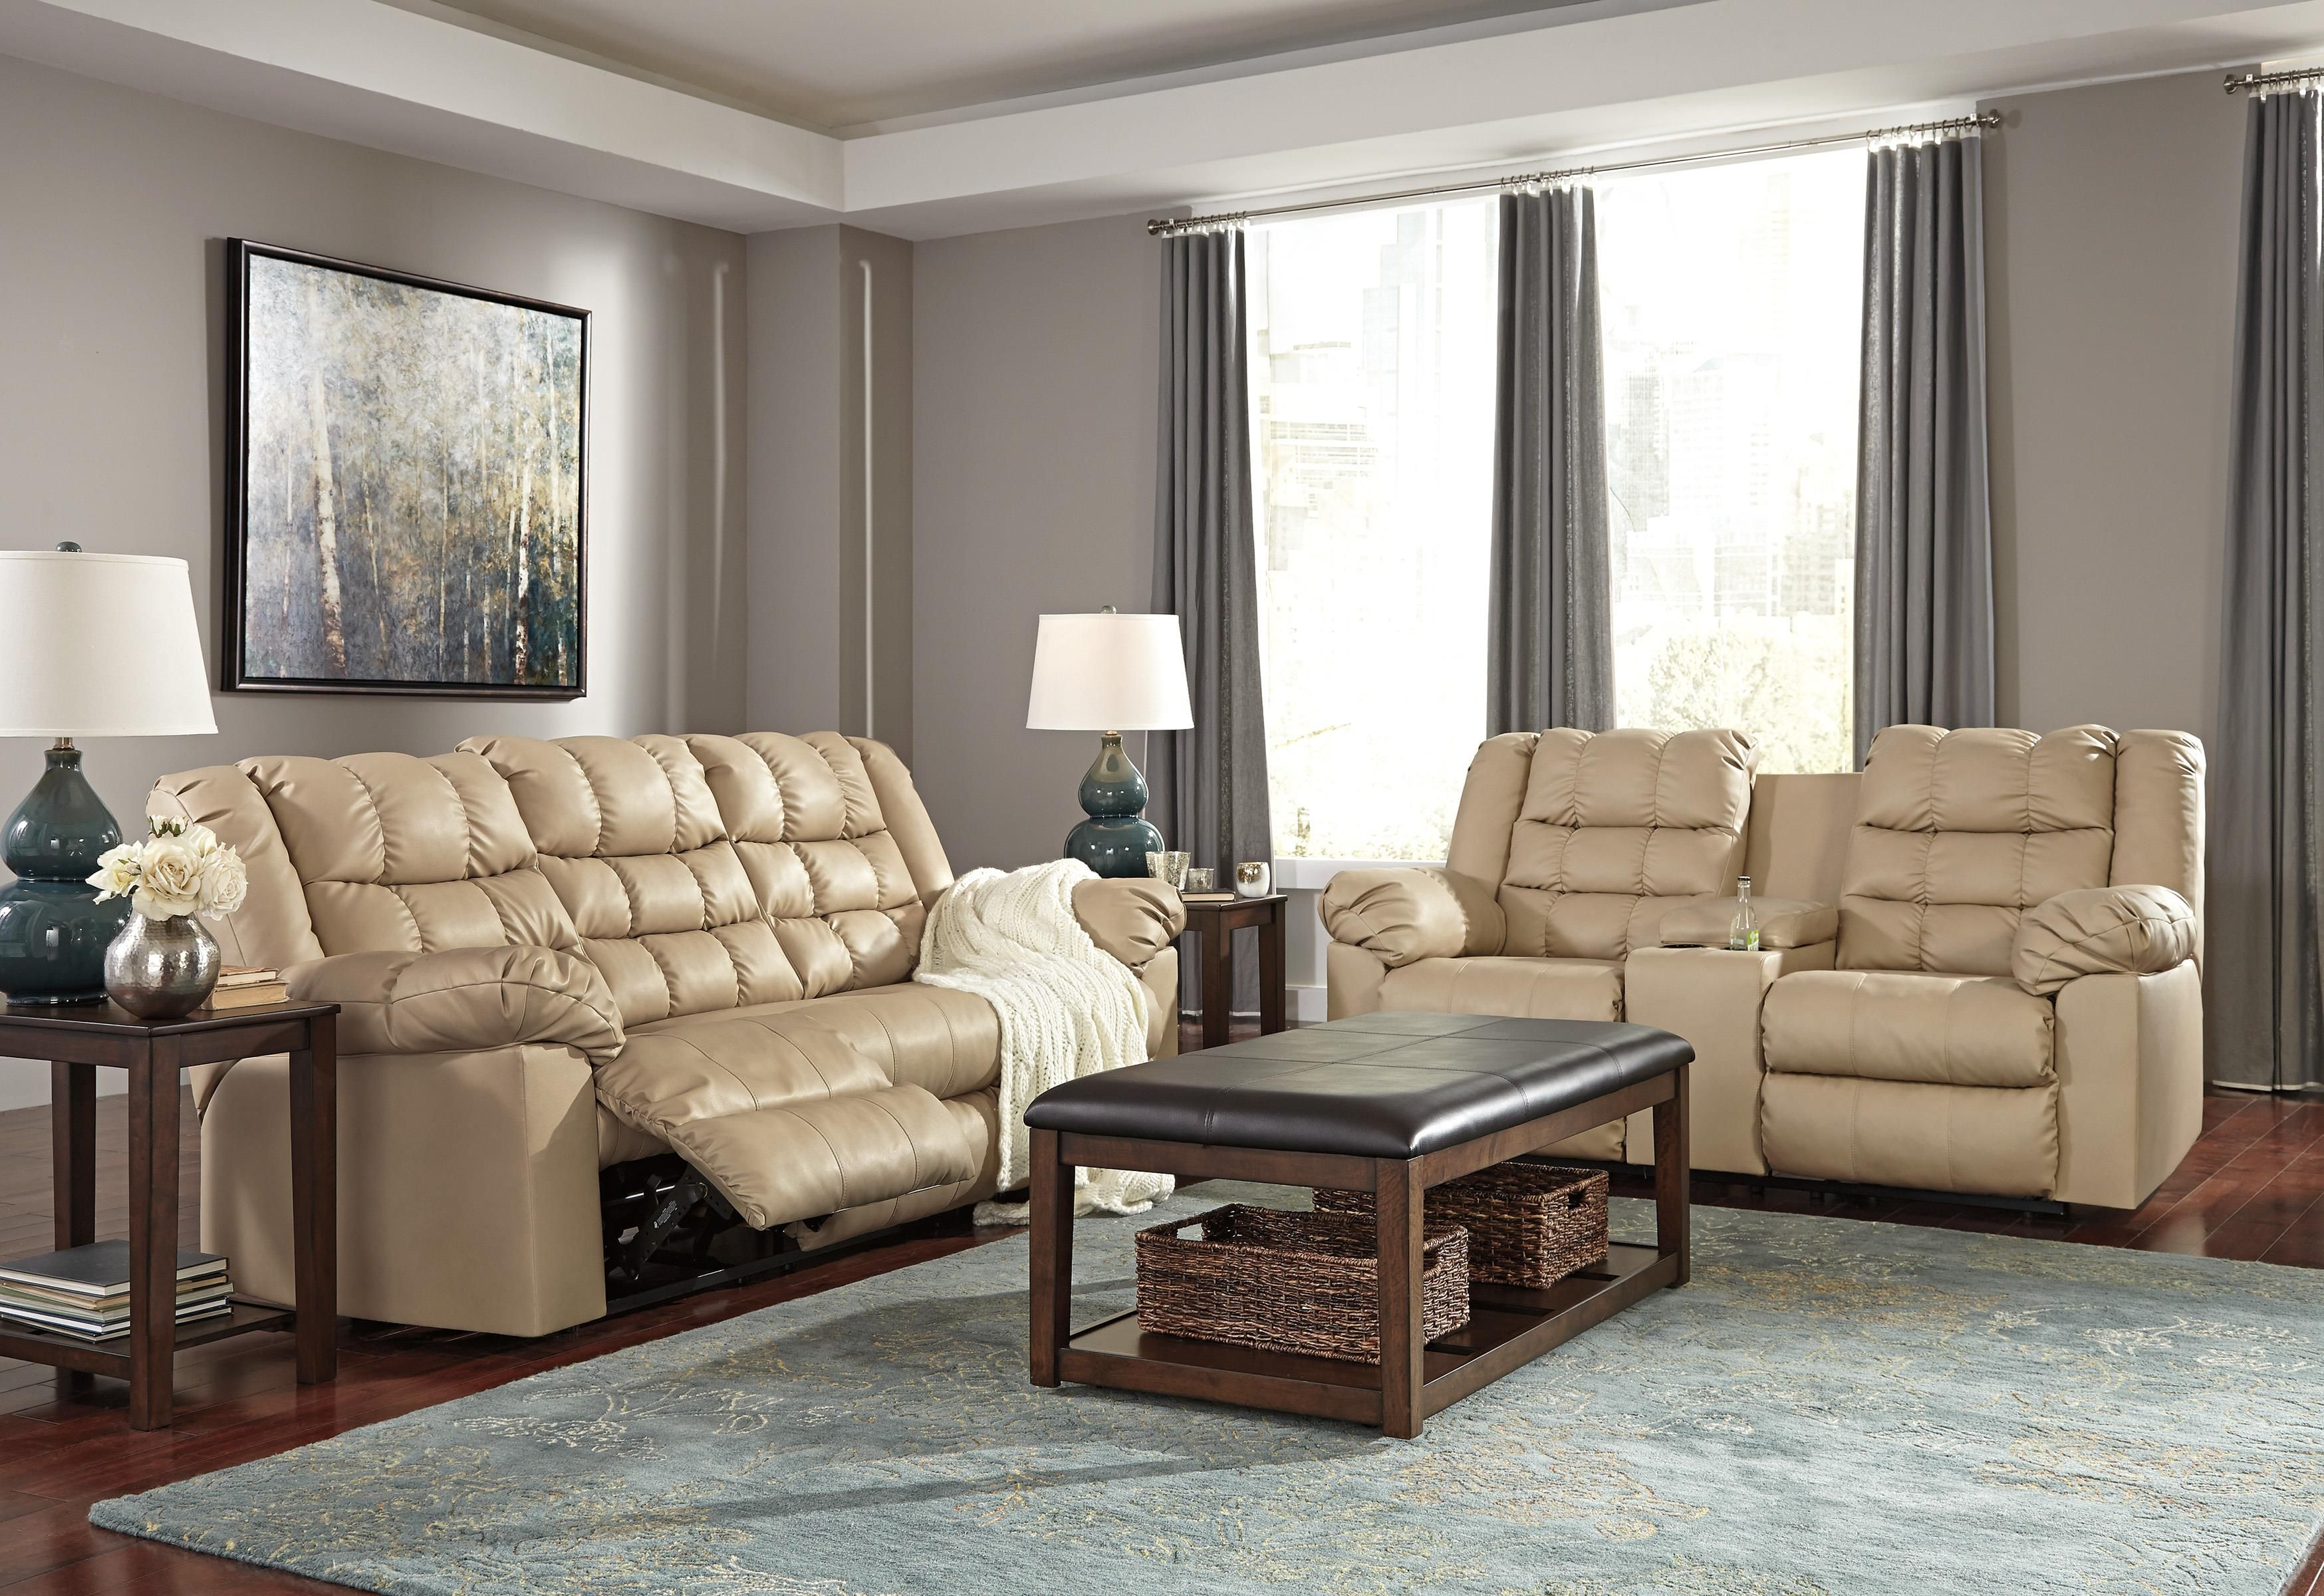 Discover A World Of Comfort And Style With The Brolayne In Beige! All  American Furniture